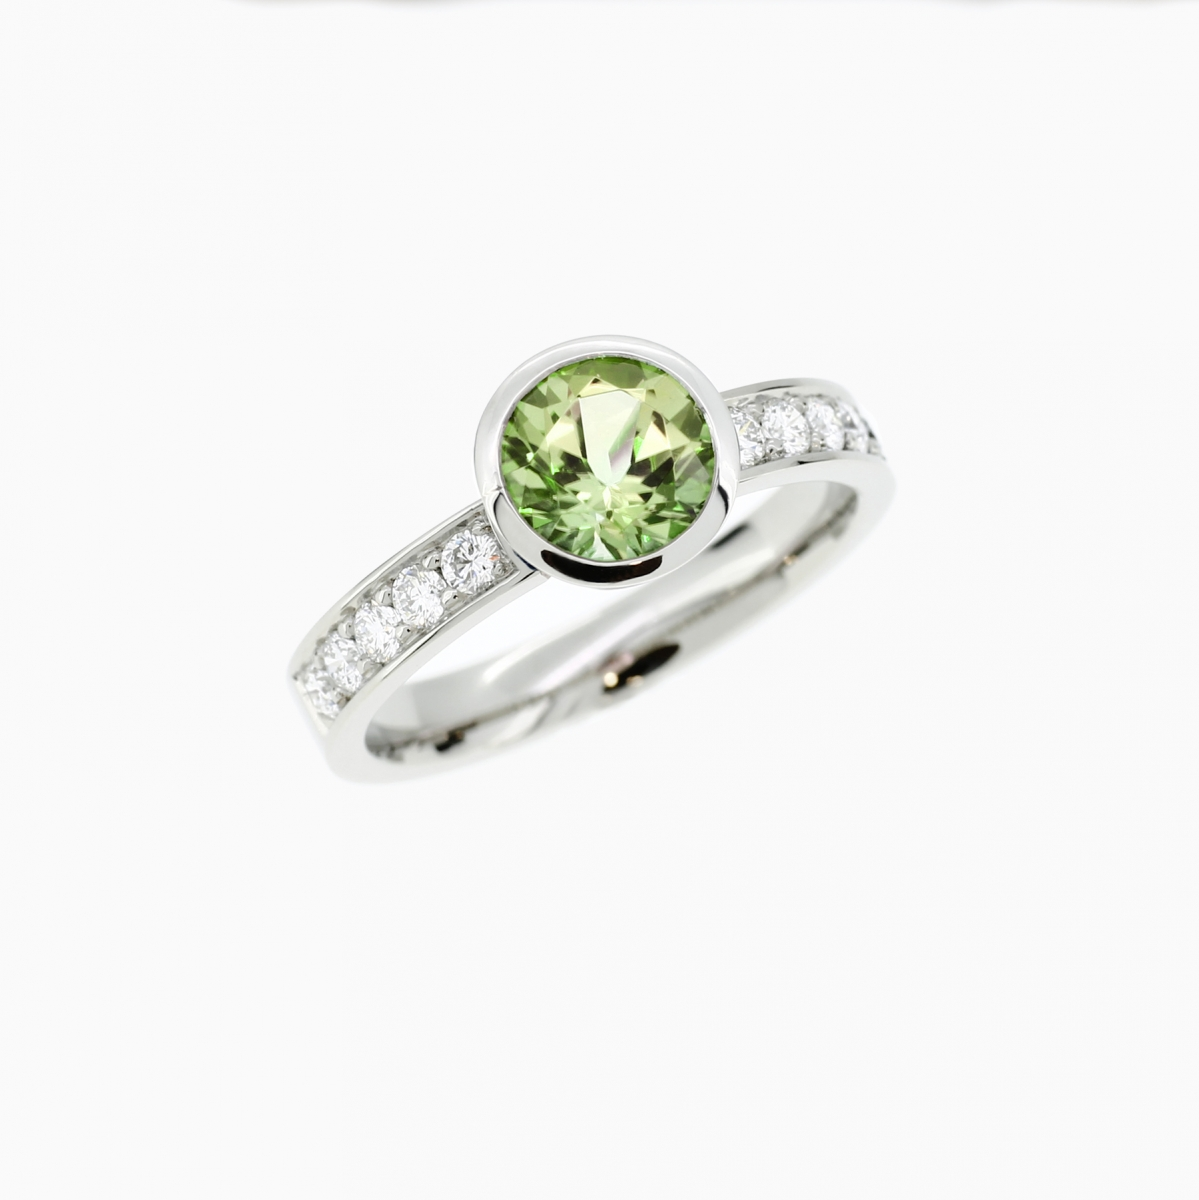 gift sterling peridot august item rings for oval birthstone ring fine from jewelry anniversary natural silver in cut engagement leige anniversay green women real